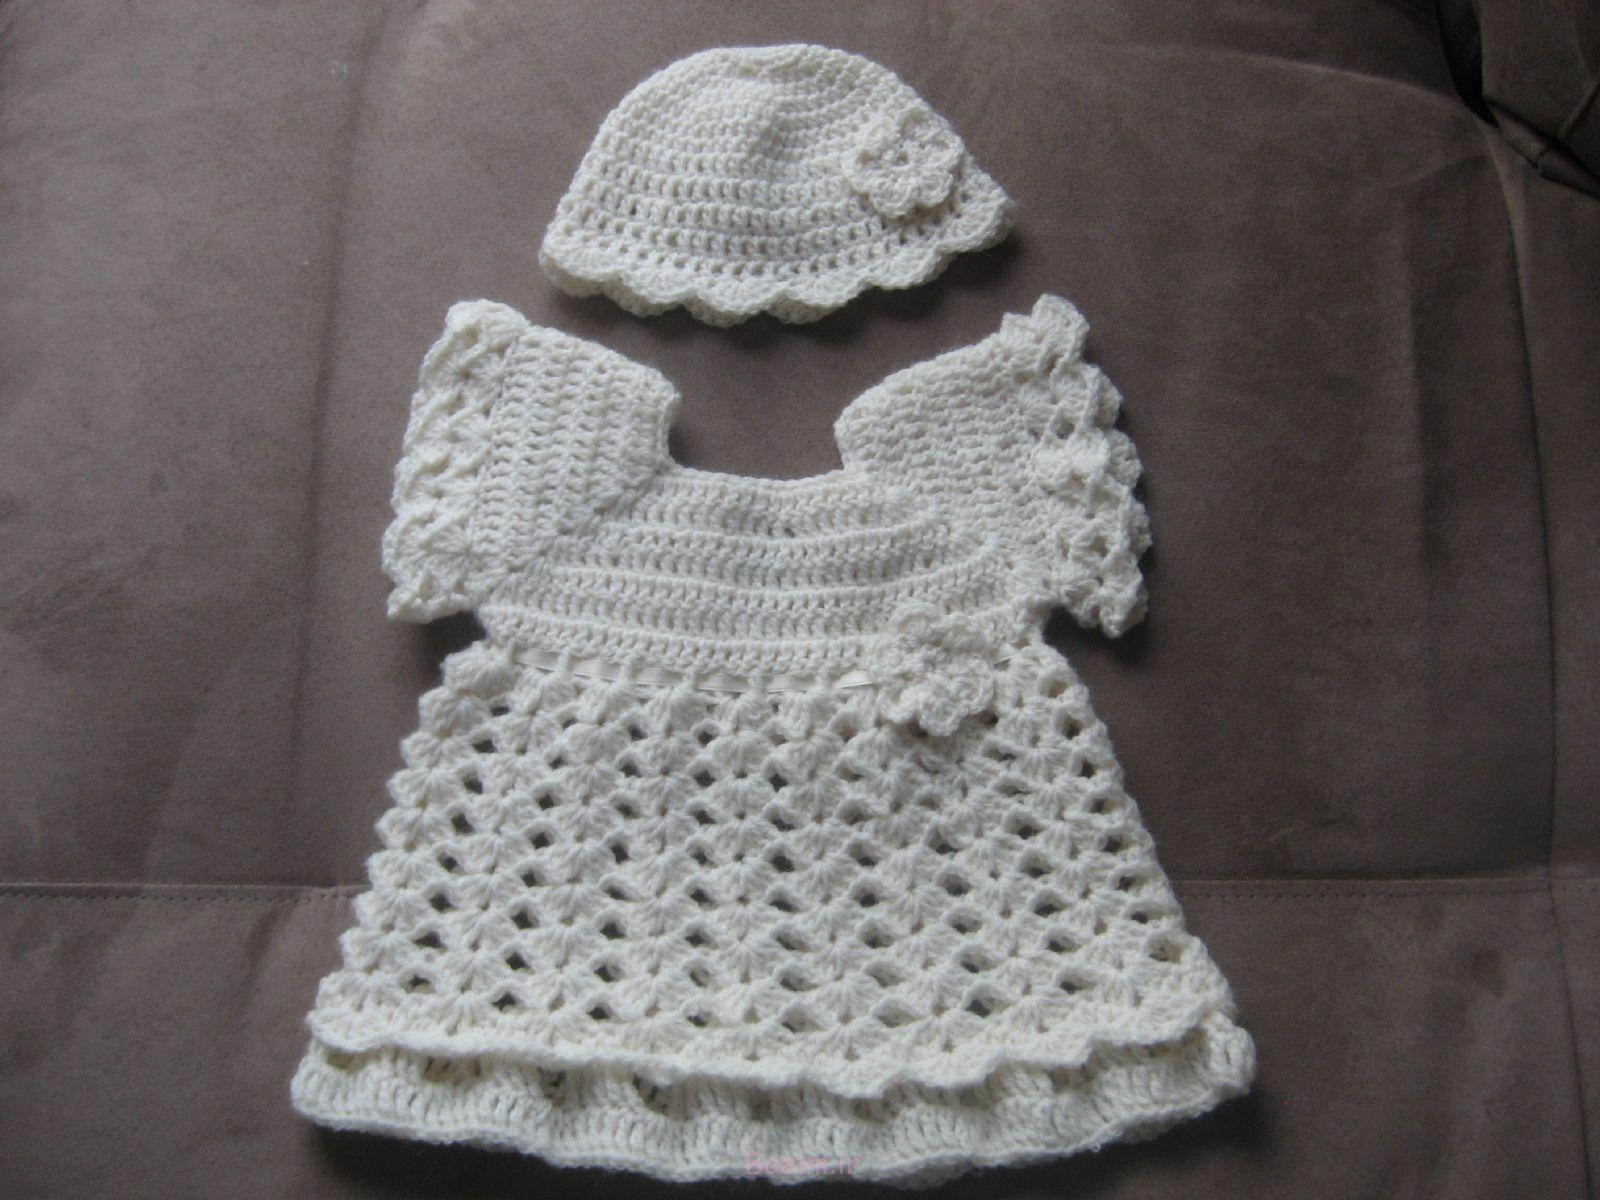 Best Crocheted Sweaters for Newborn Babies (15)